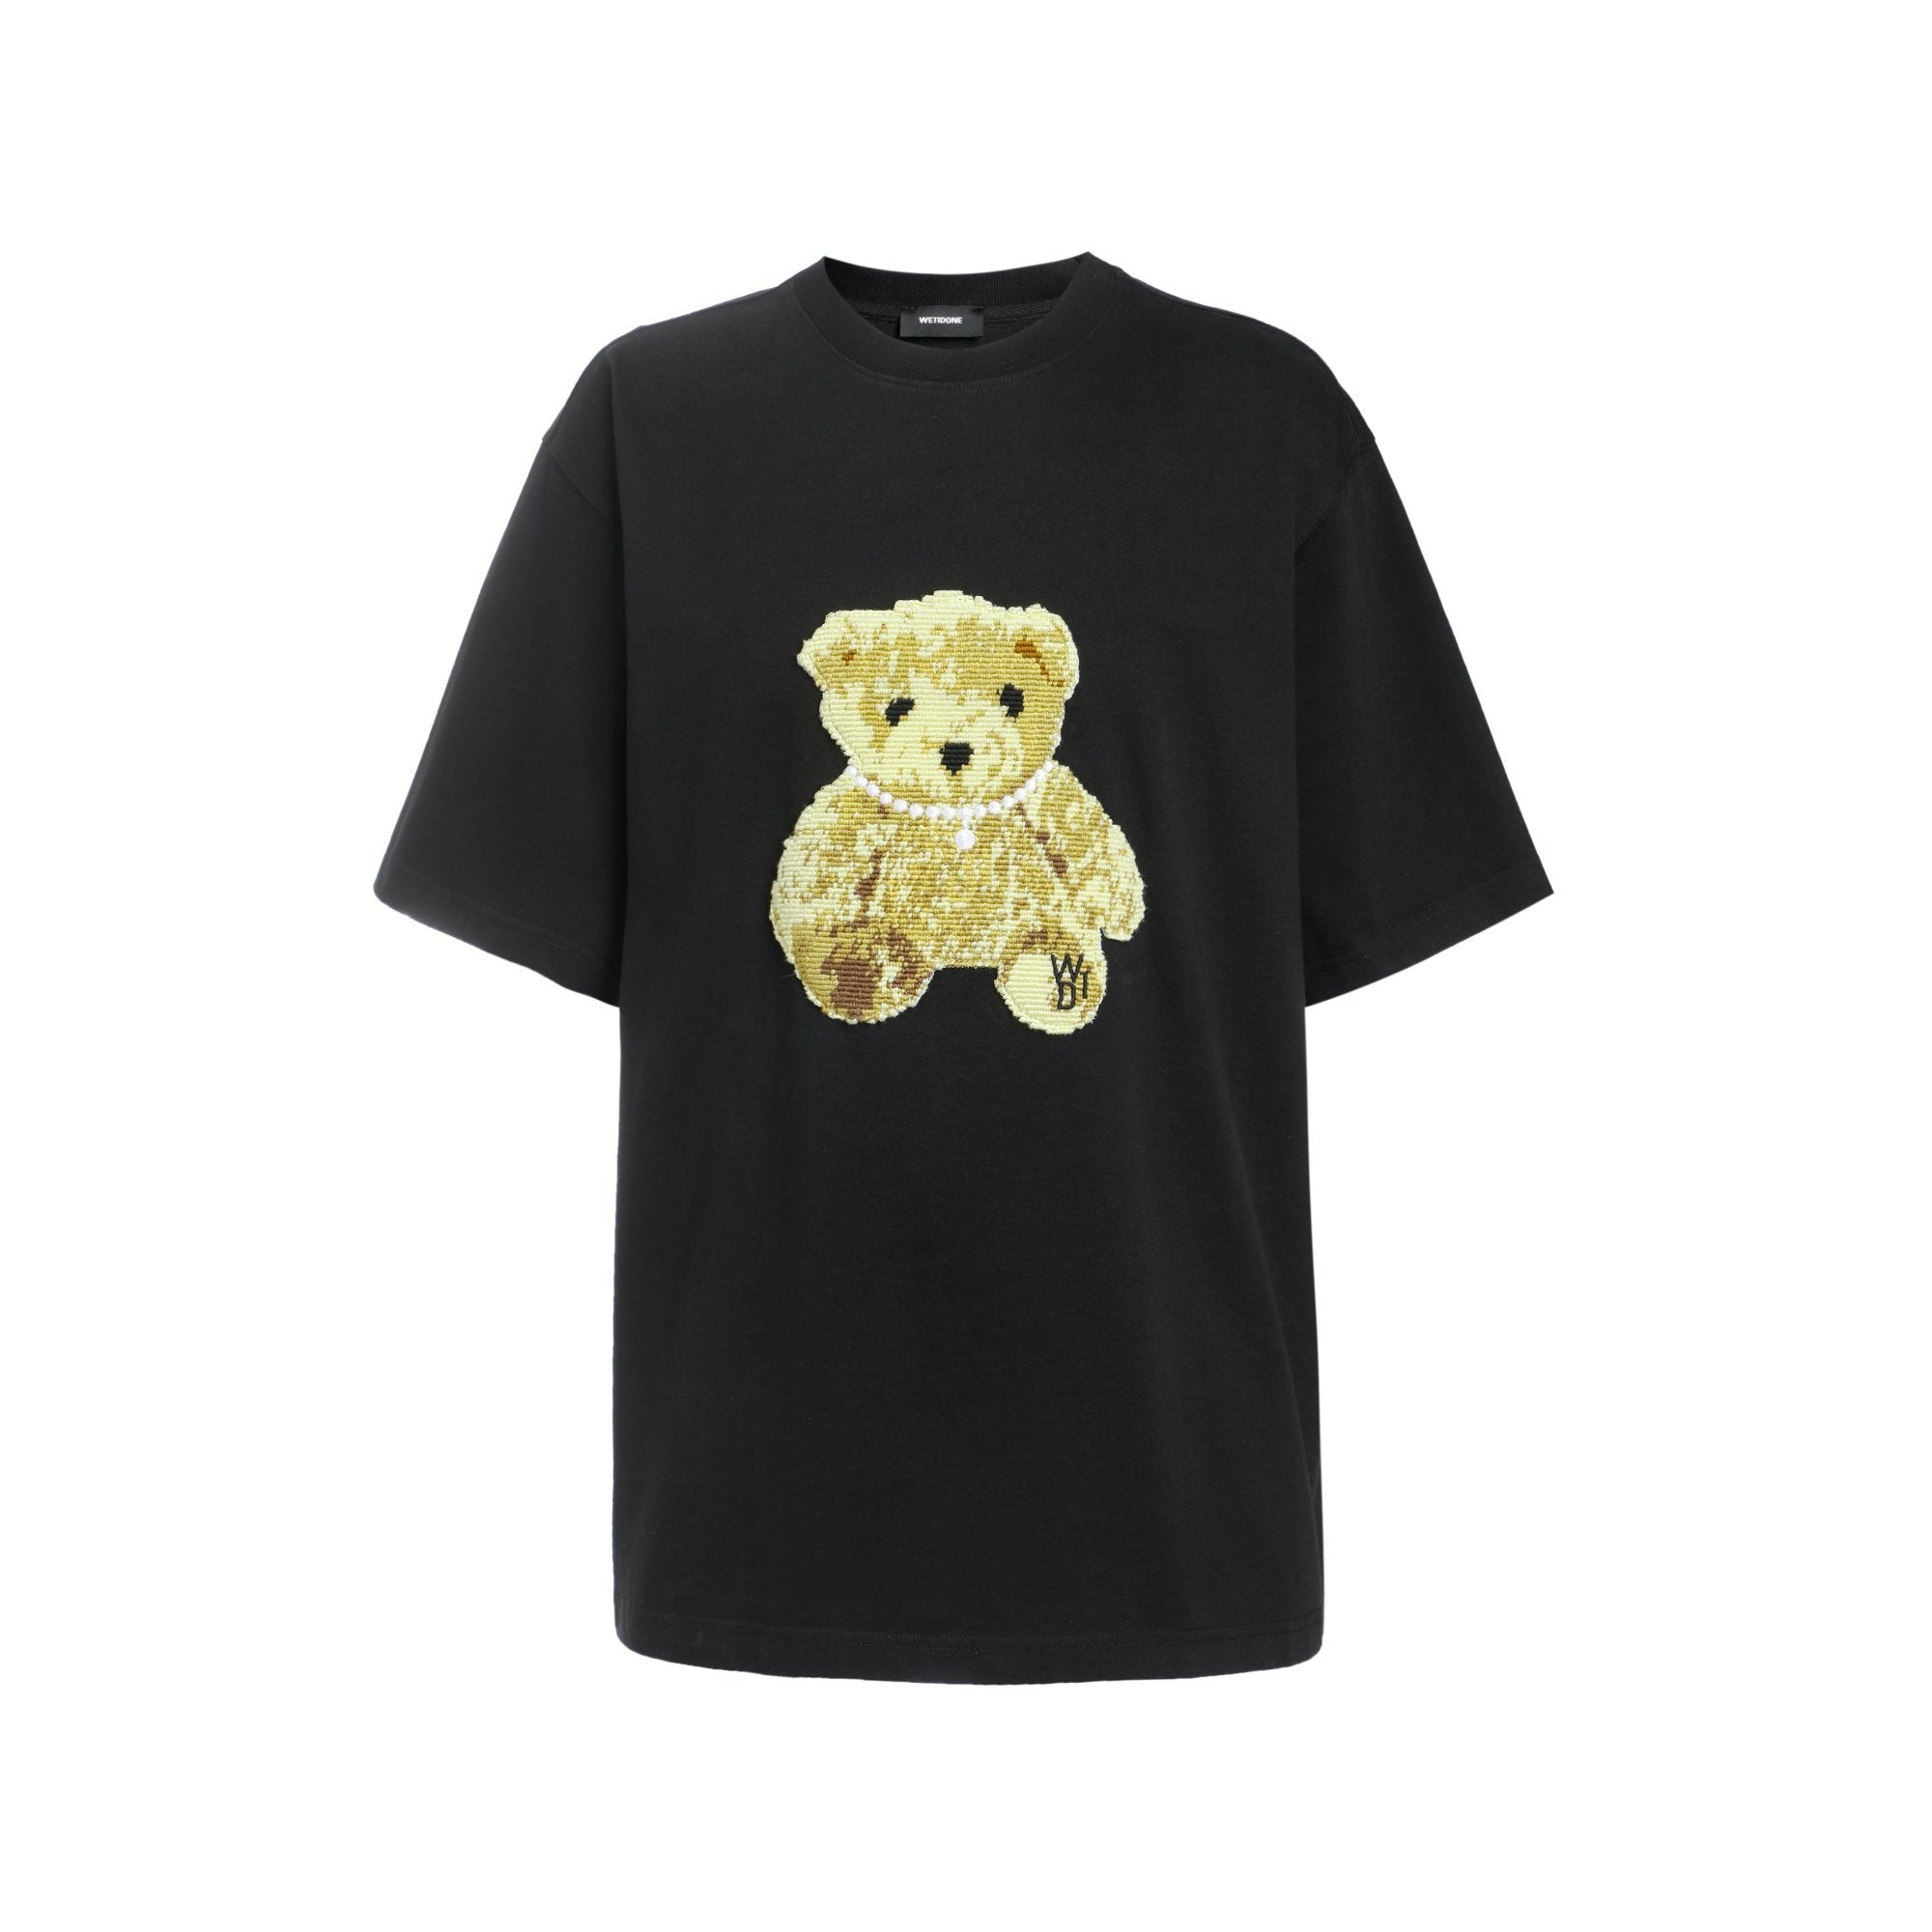 WE11DONE Black Embroidered Teddy T-Shirt | MADA IN CHINA